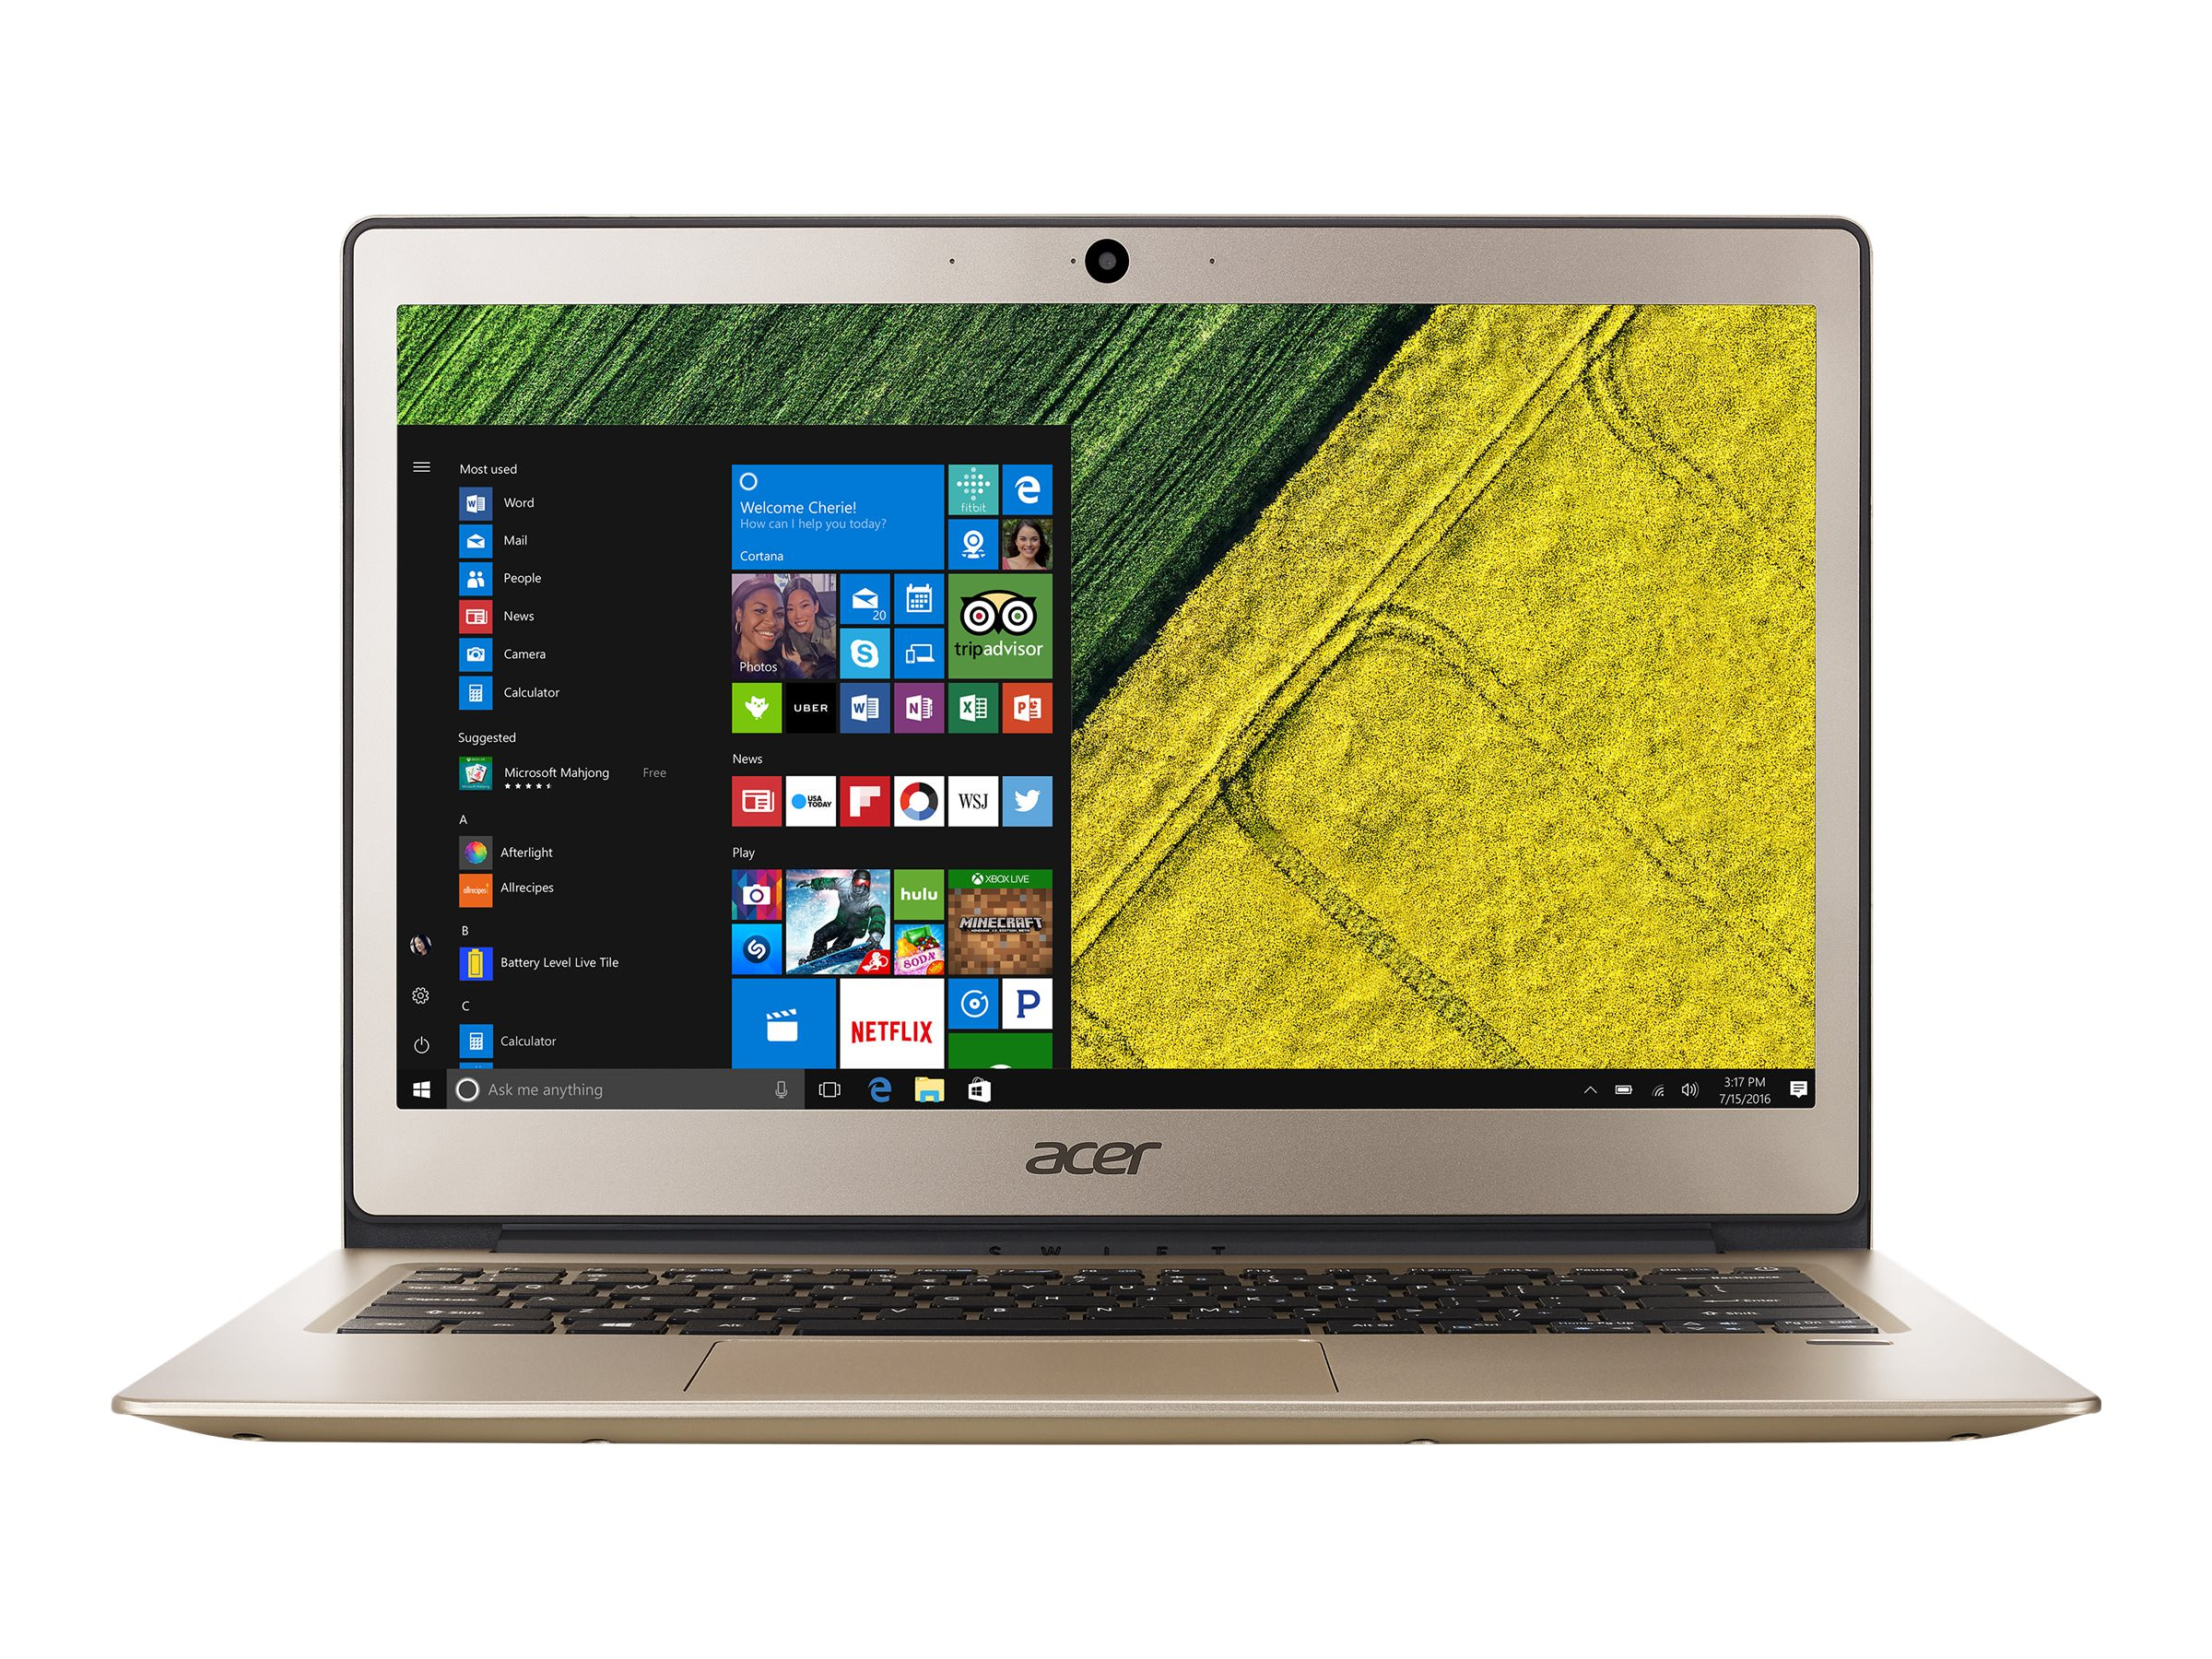 Acer Swift 1 133 Full Hd Ultra Thin Notebook Intel Pentium N4200 Unique Laptop Cooling Pad Is 668 Uhd Graphics 4gb 64gb Hdd Sf113 31 P5ck